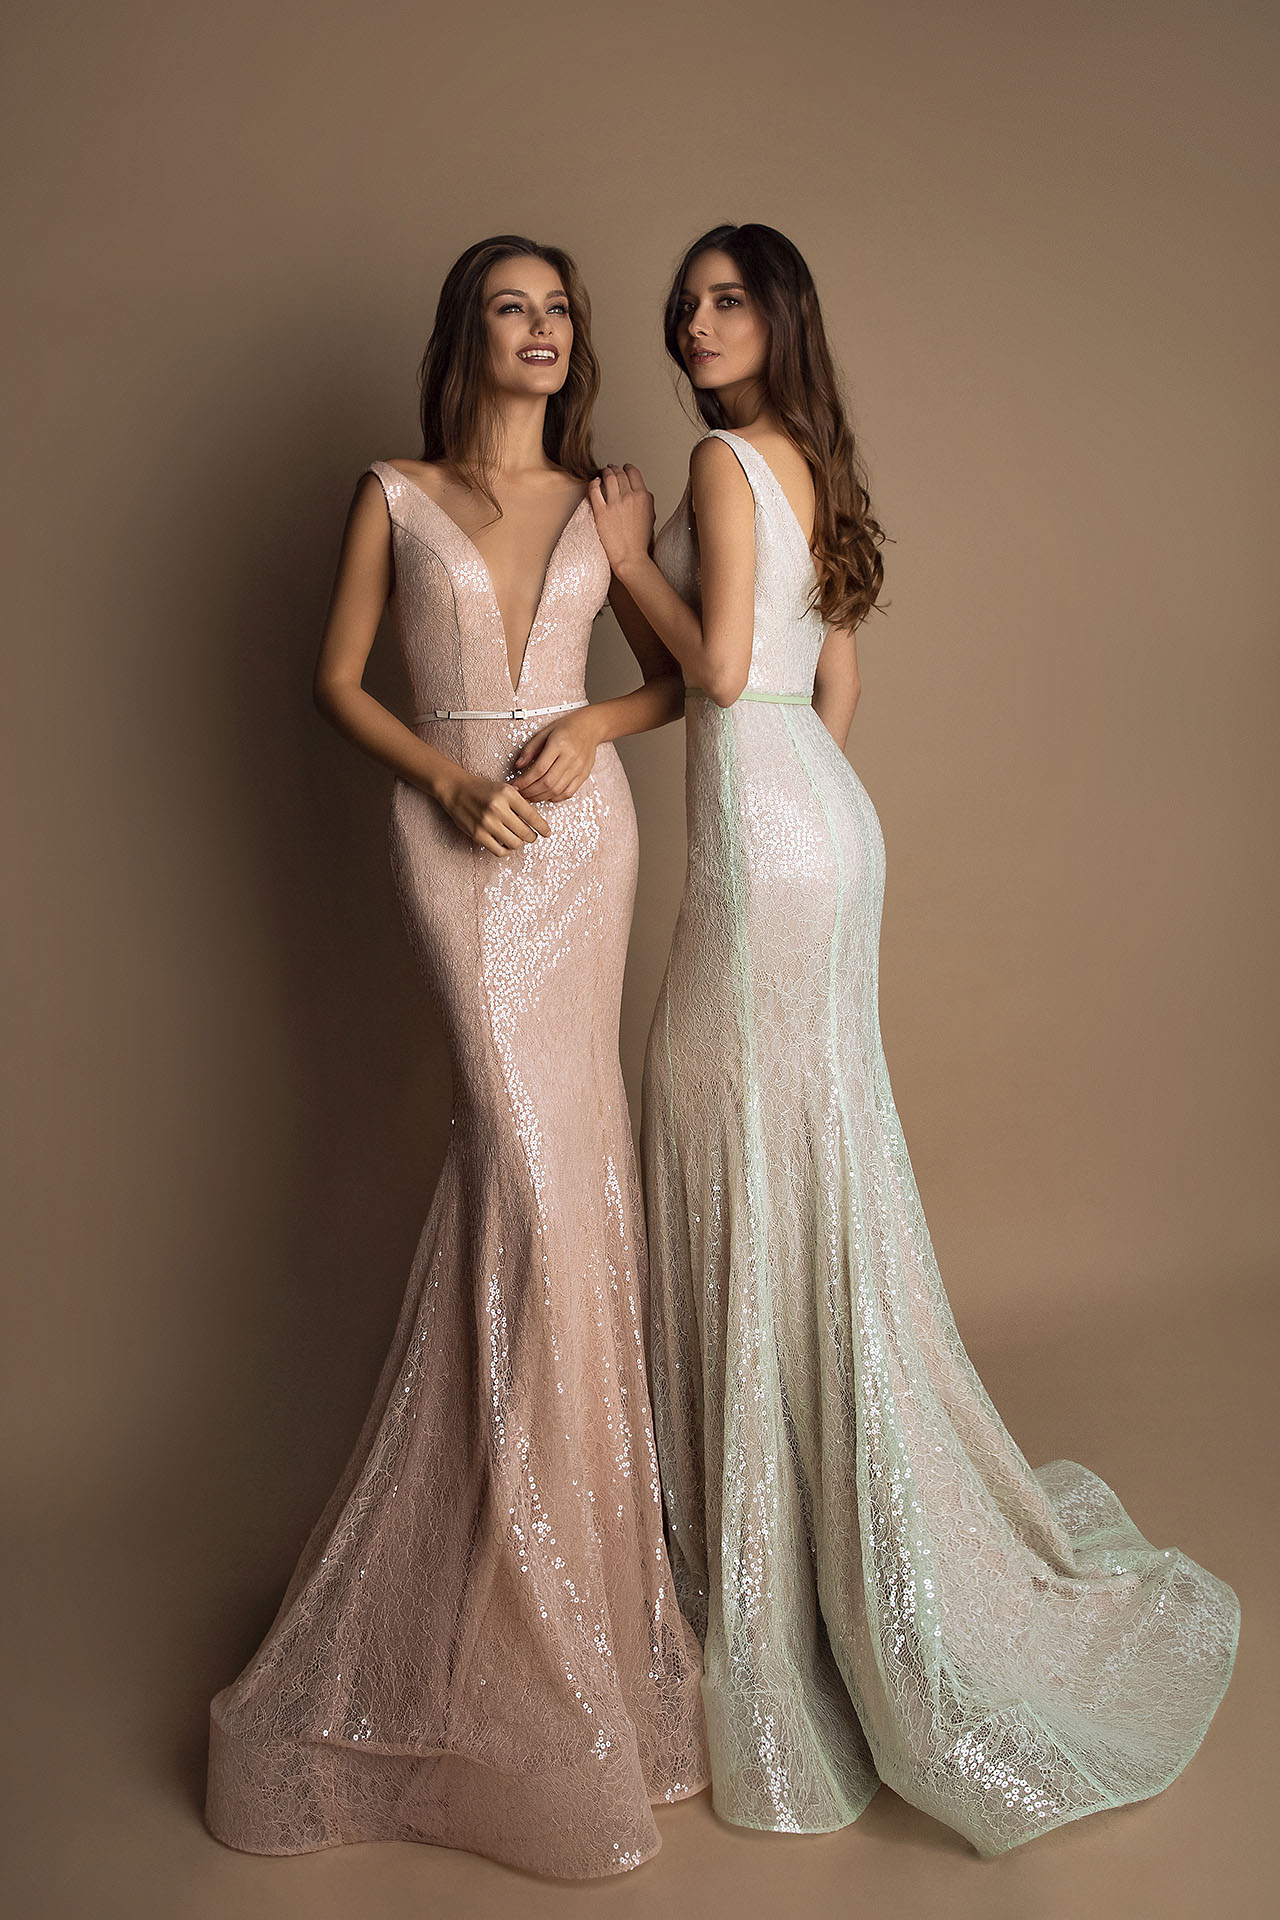 Evening gowns S-1608 blush Silhouette  Fitted  A Line  Color  Blush  Neckline  Portrait (V-neck)  Sleeves  Wide straps  Train  Detachable train - foto 5